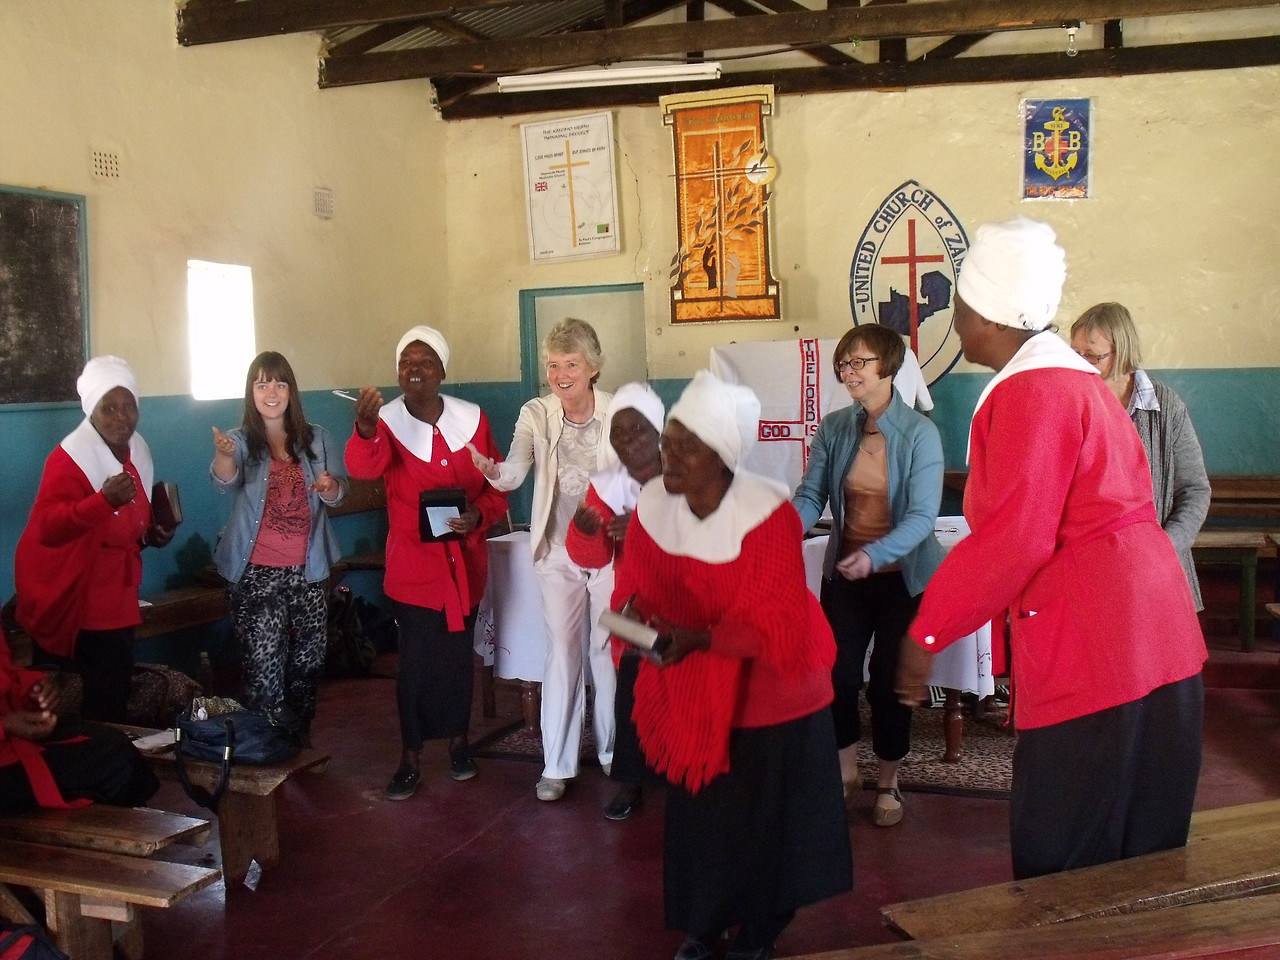 Singing with the Women's Christian Fellowship